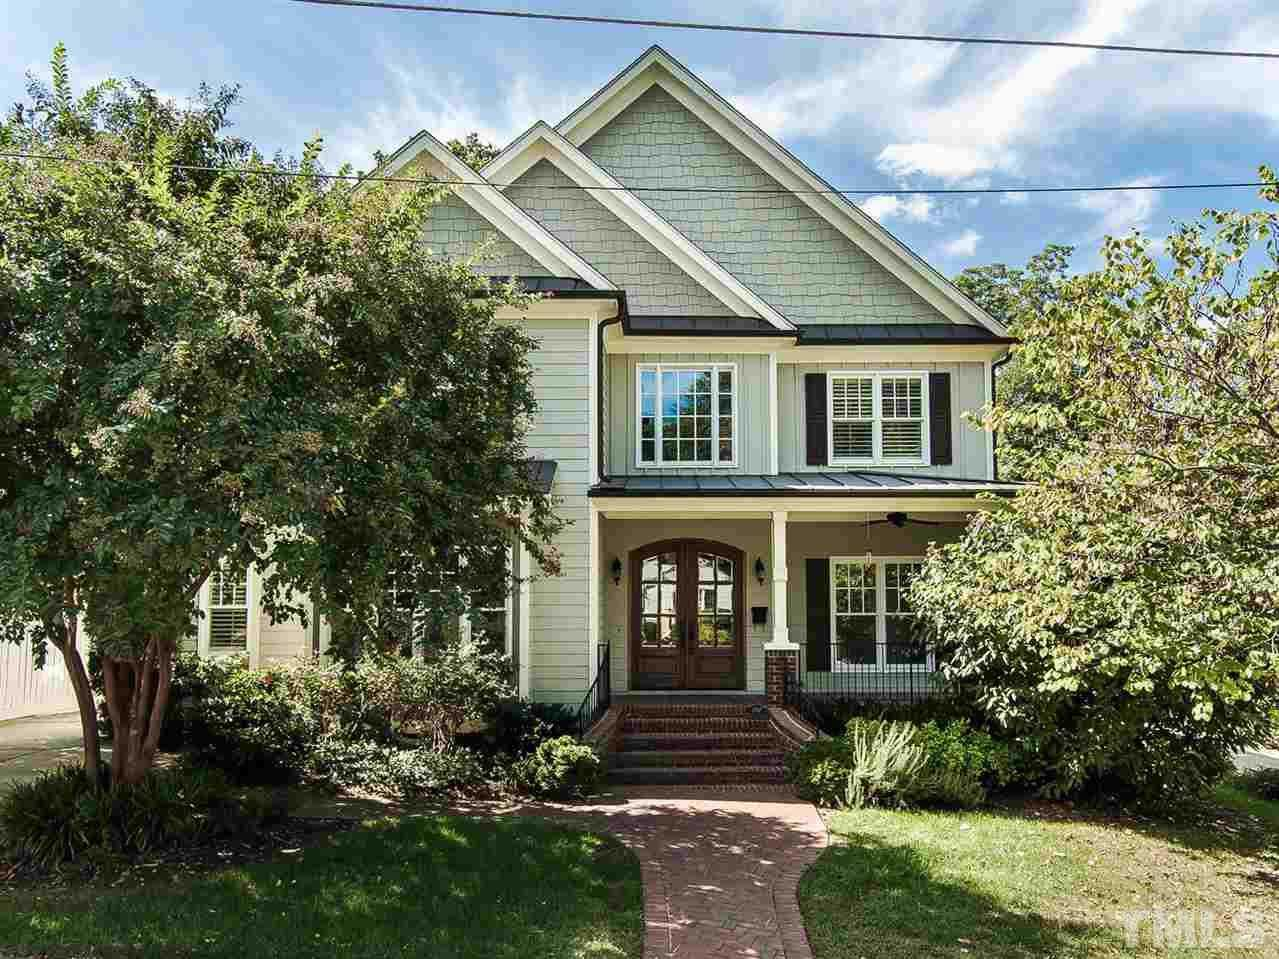 $900,000 - 5Br/5Ba -  for Sale in Not In A Subdivision, Raleigh